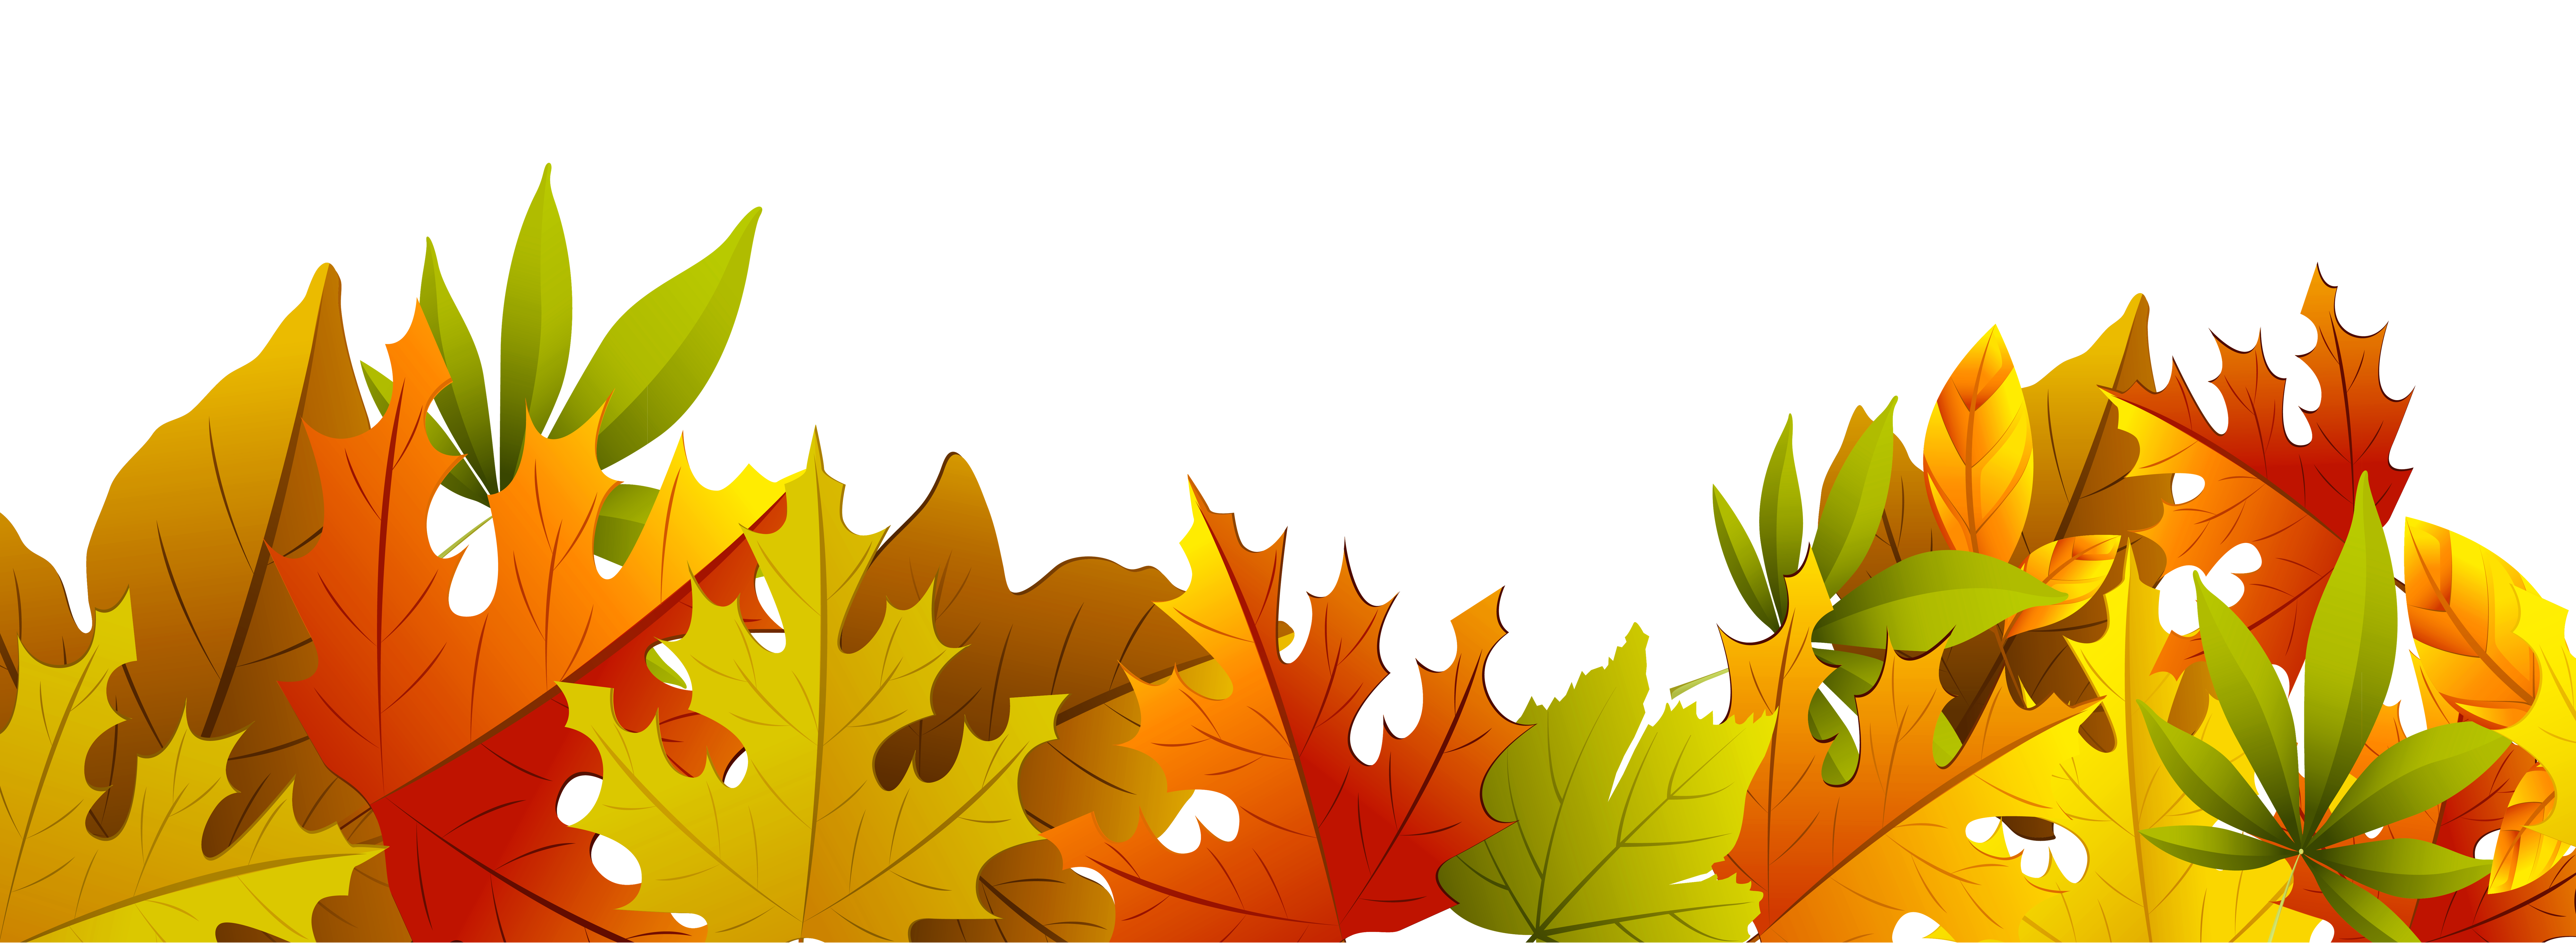 Autumn leaves border png. Decorative clipart gallery yopriceville